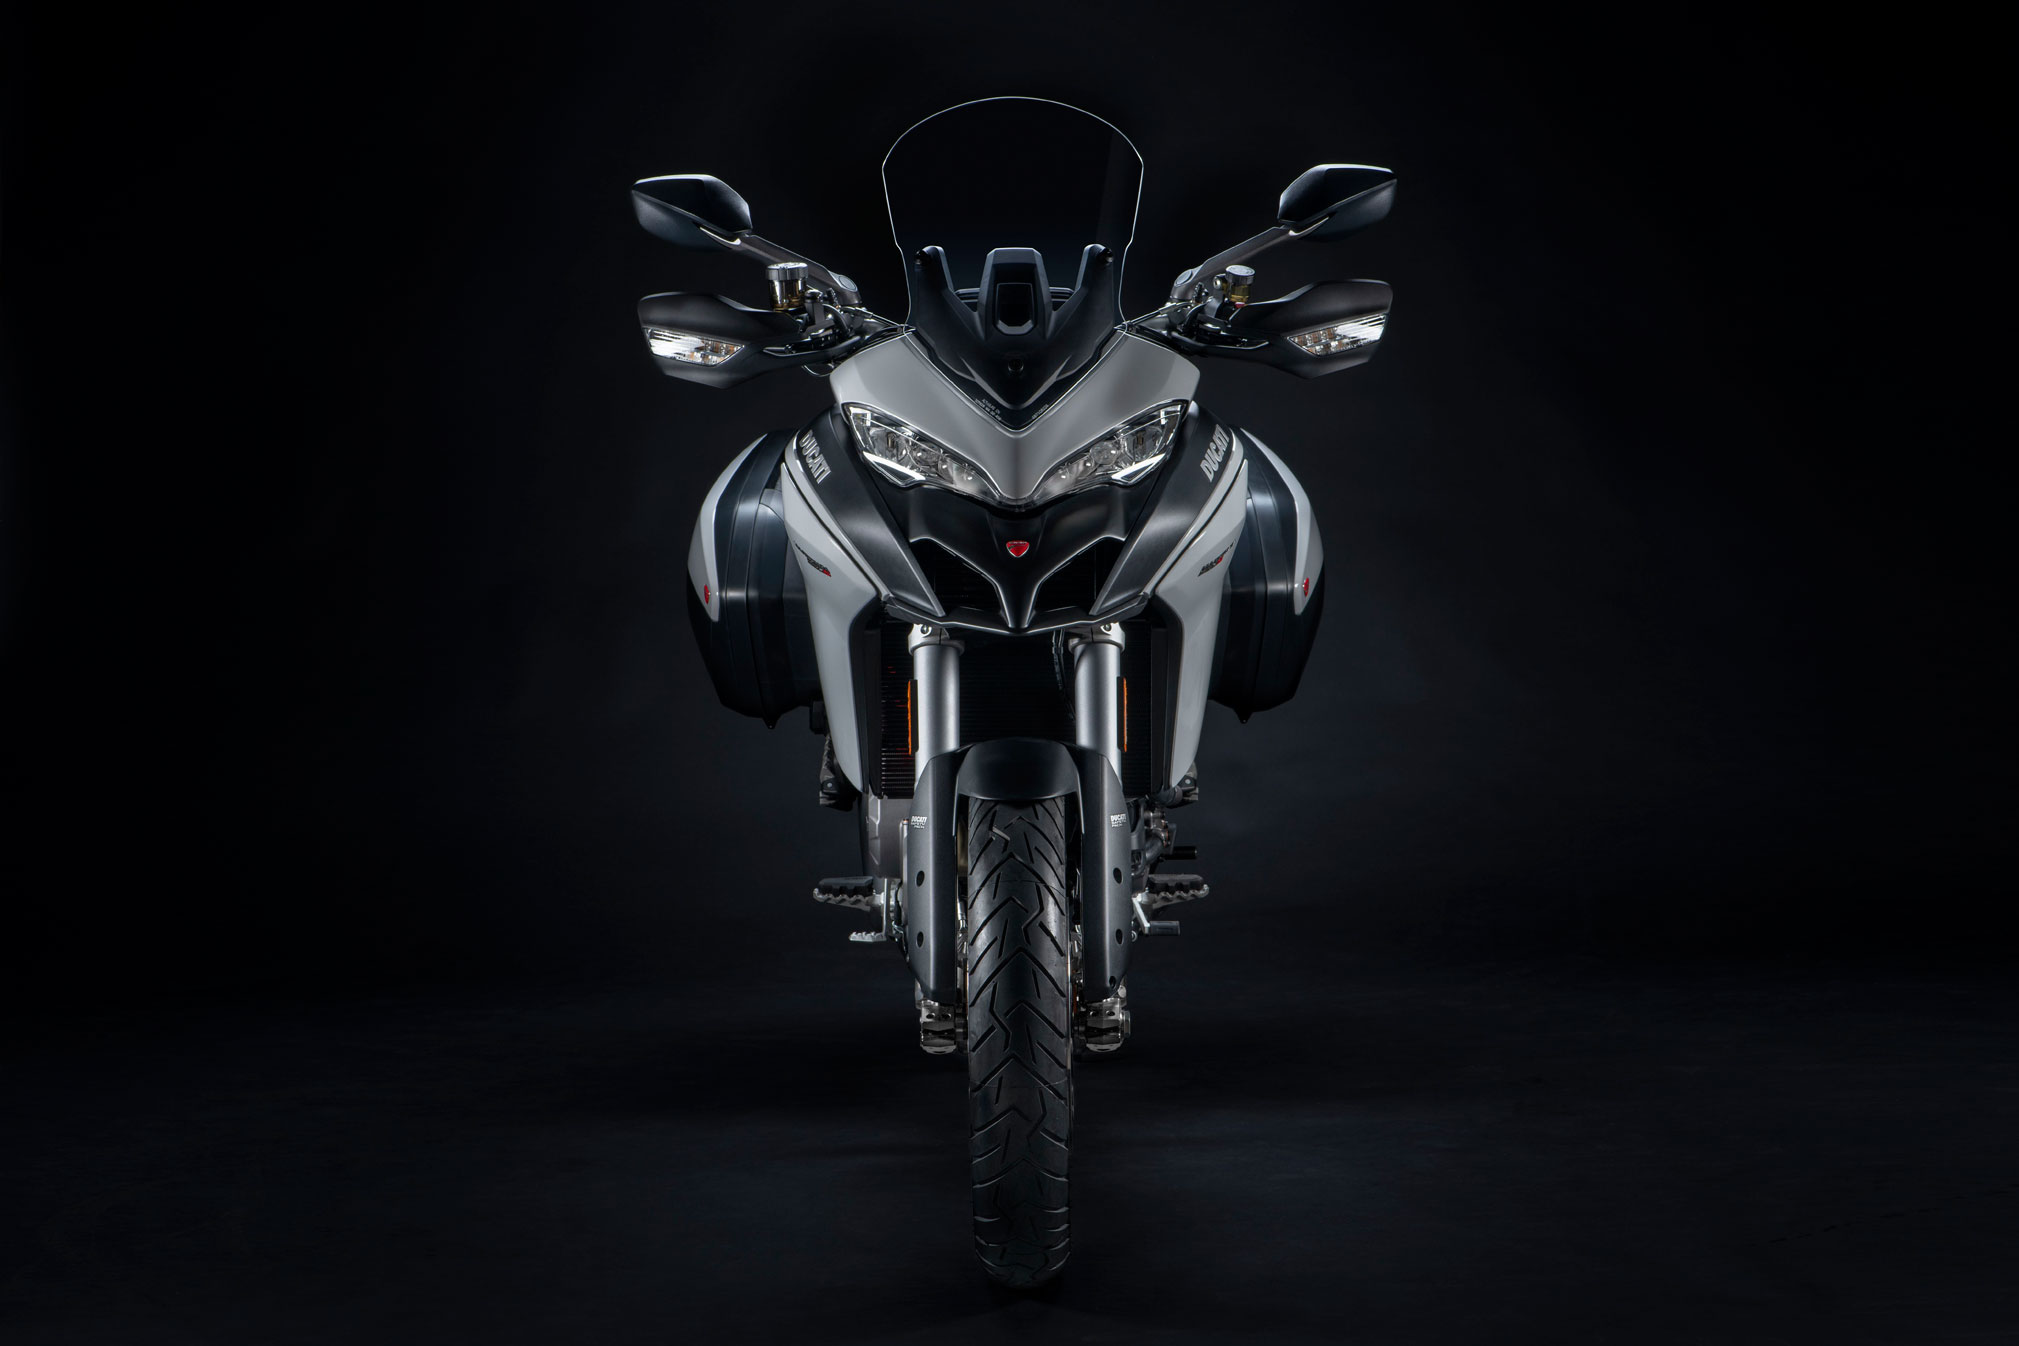 Terrific 2019 Ducati Multistrada 950S Guide Total Motorcycle Caraccident5 Cool Chair Designs And Ideas Caraccident5Info